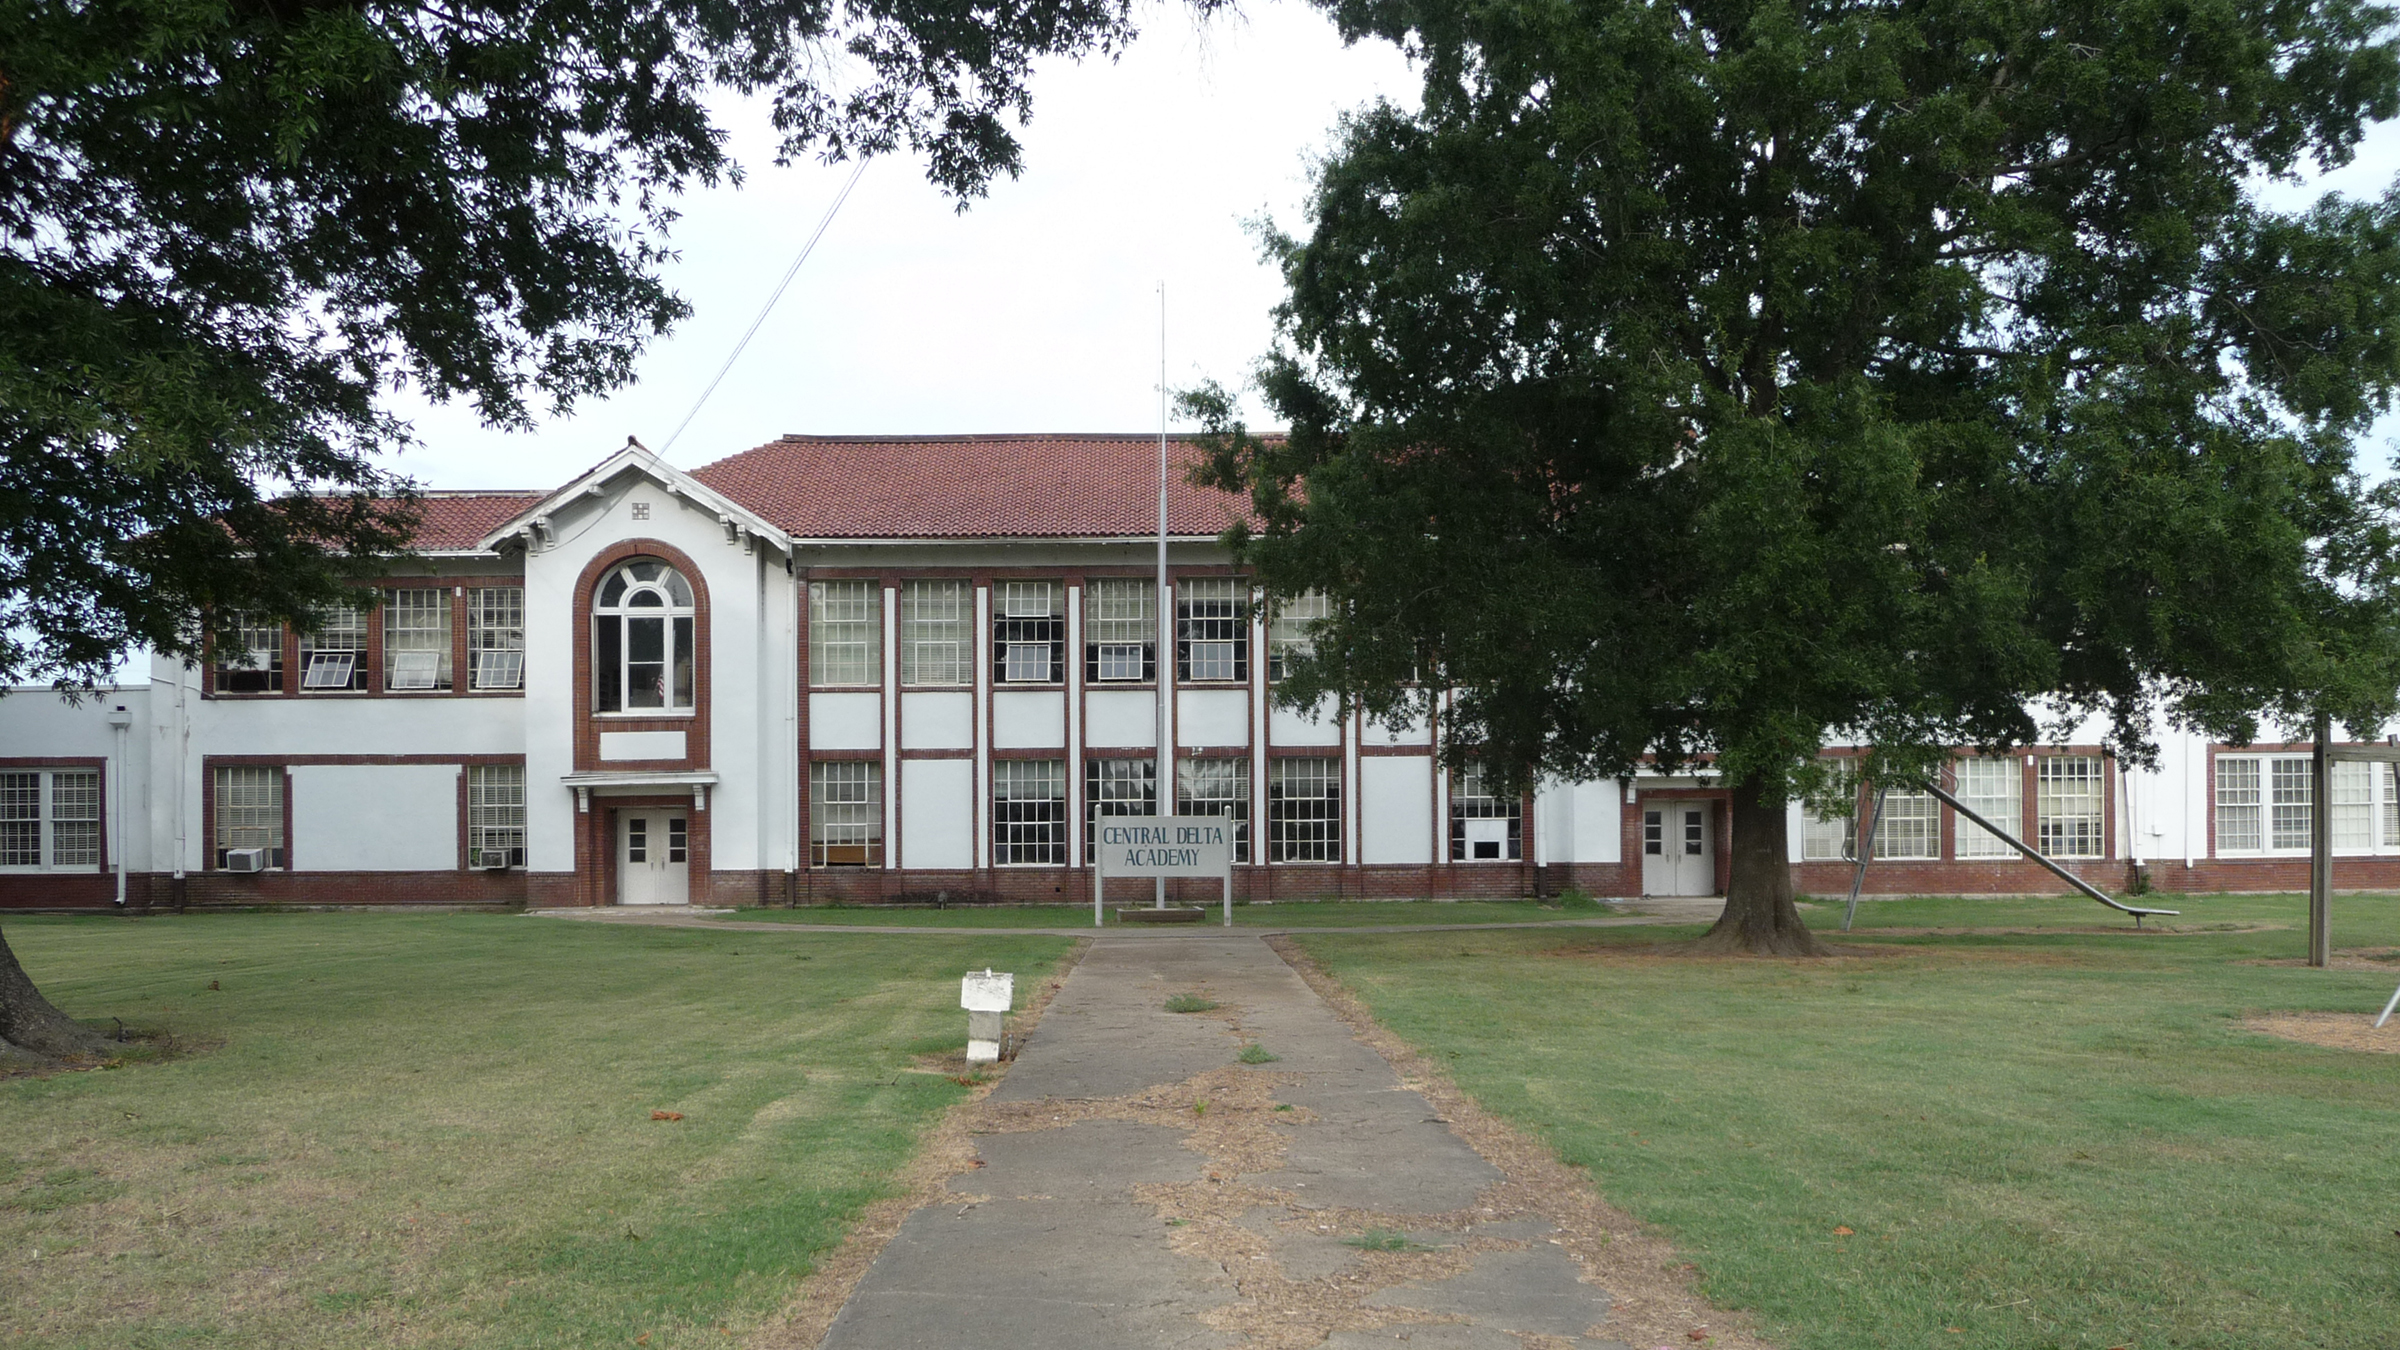 Central Delta Academy in Inverness, Mississippi was a segregation academy